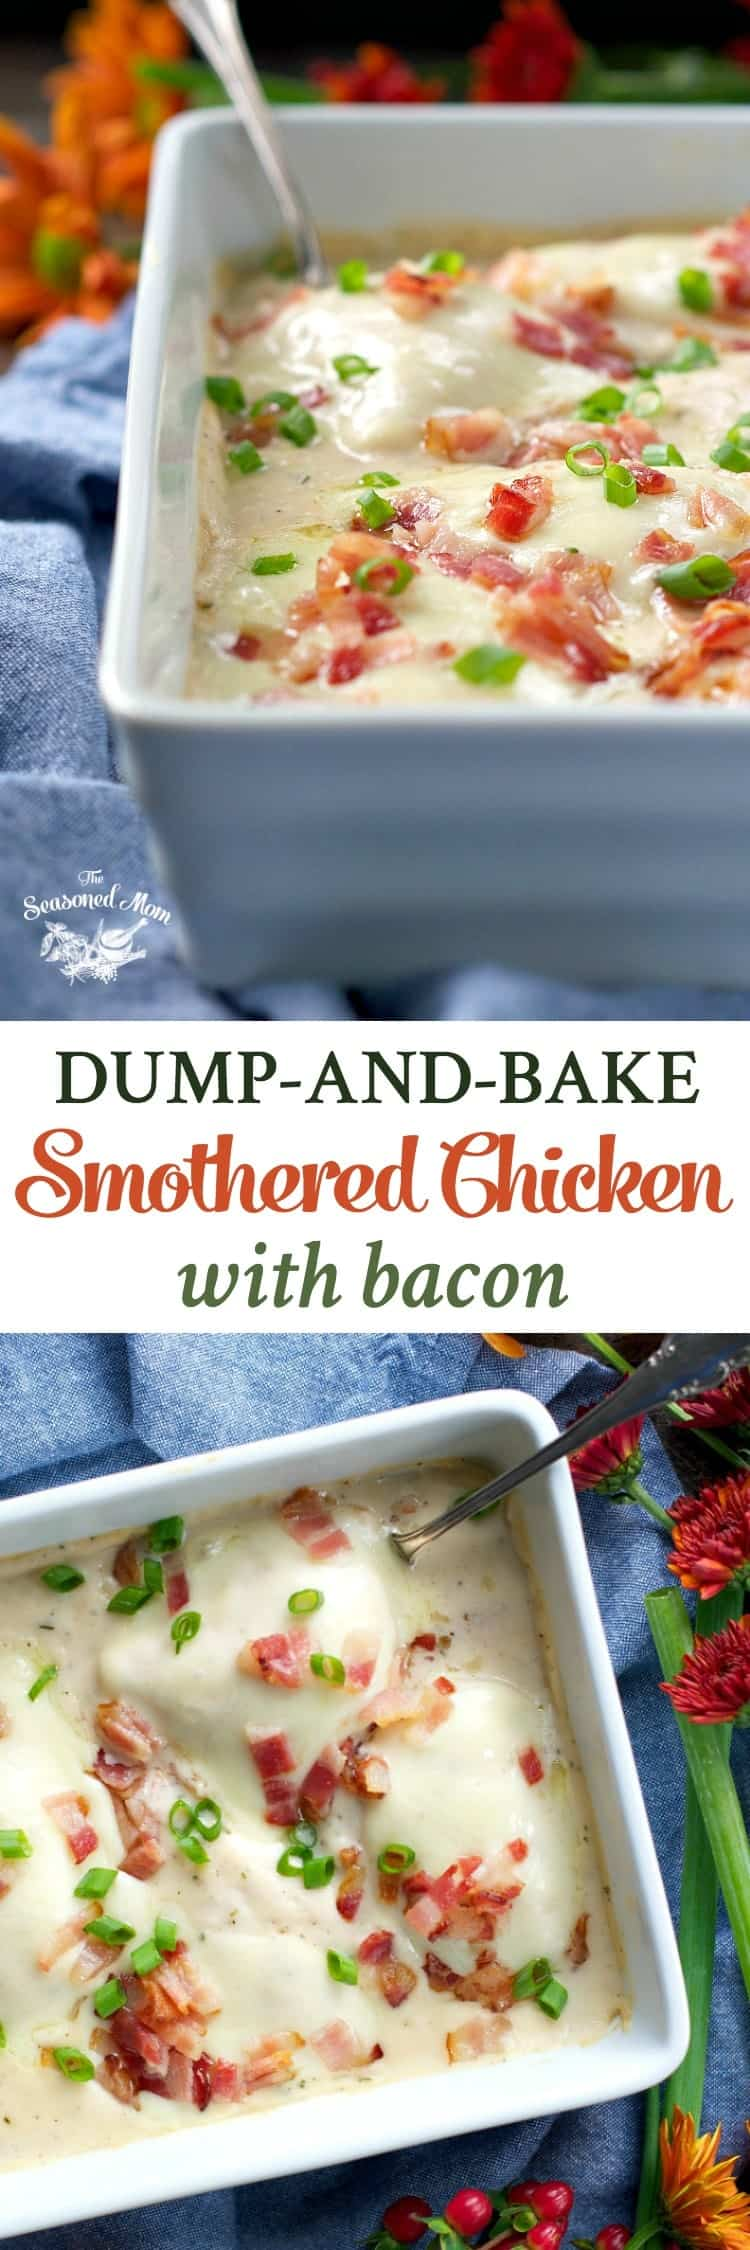 Dump-and-Bake Smothered Chicken with Bacon - The Seasoned Mom